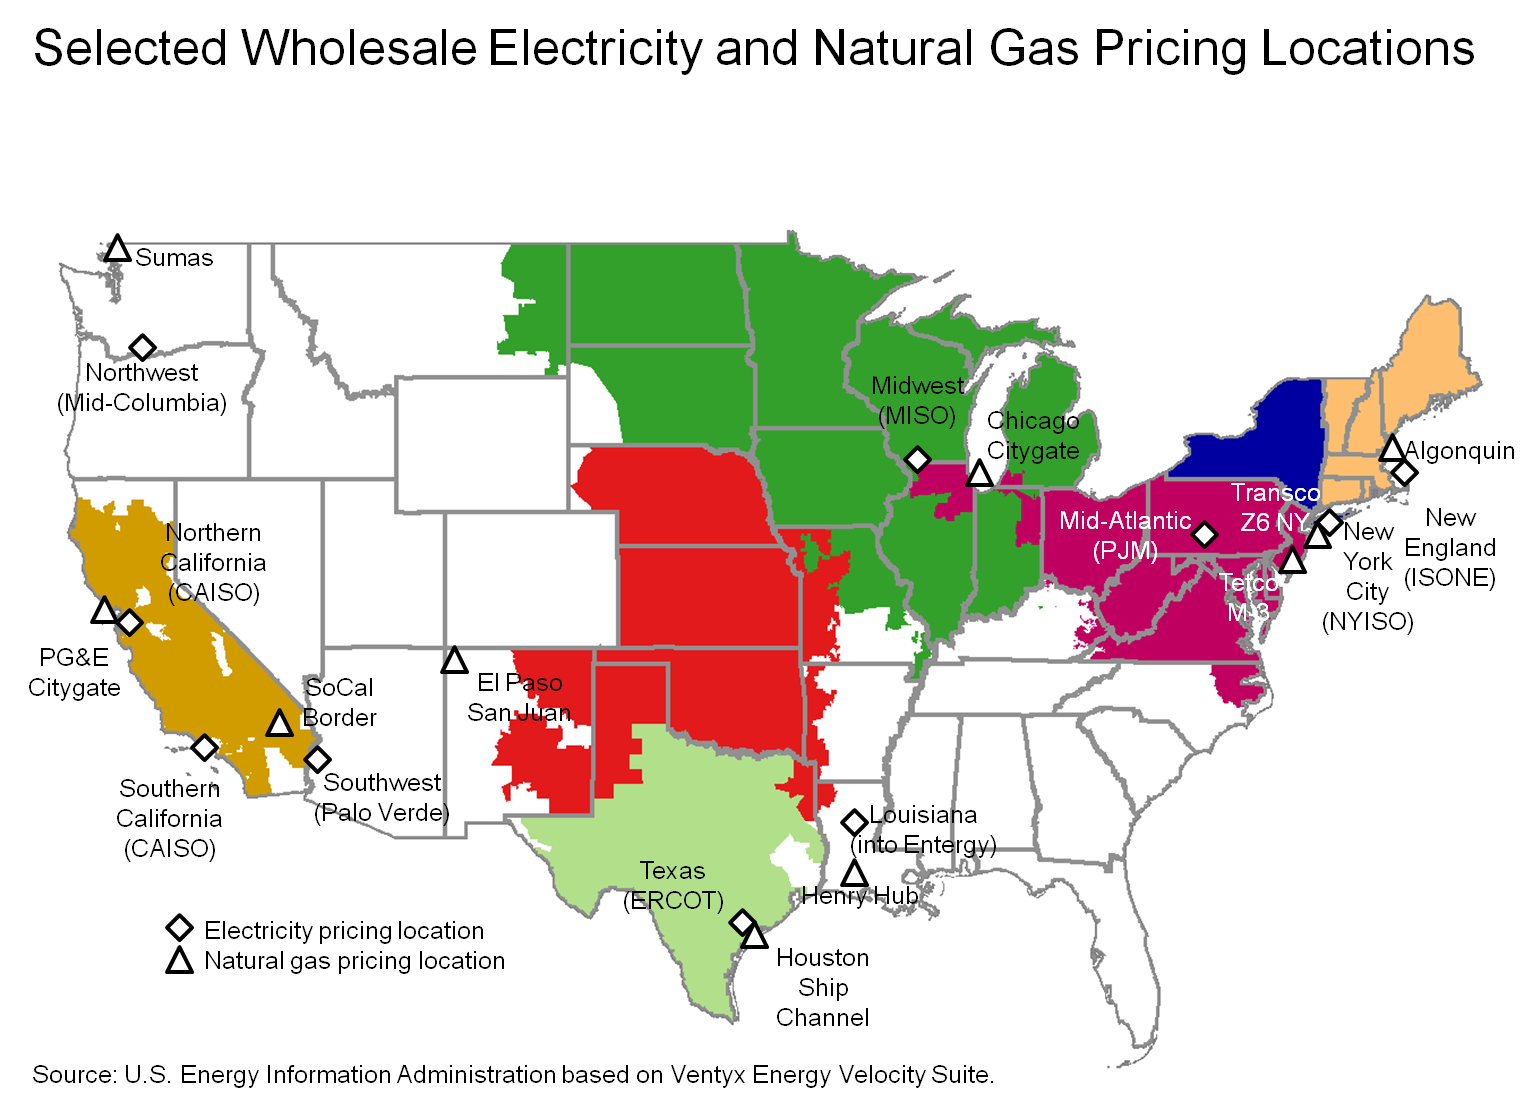 Maps US Energy Information Administration EIA - Us shale gas map